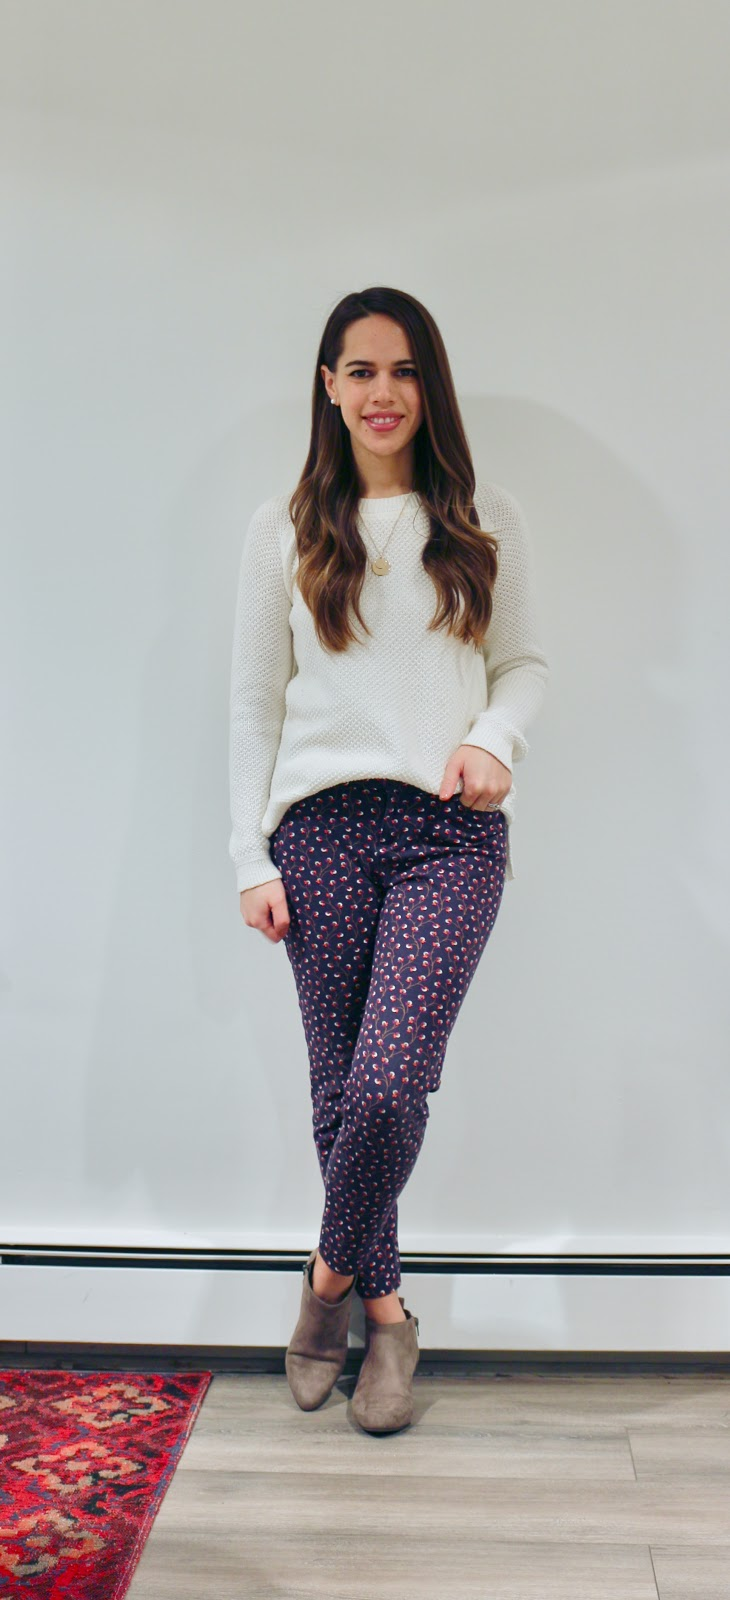 Jules in Flats - Patterned Pixie Ankle Pants with Knit Sweater and Ankle Boots (Business Casual Winter Workwear on a Budget)